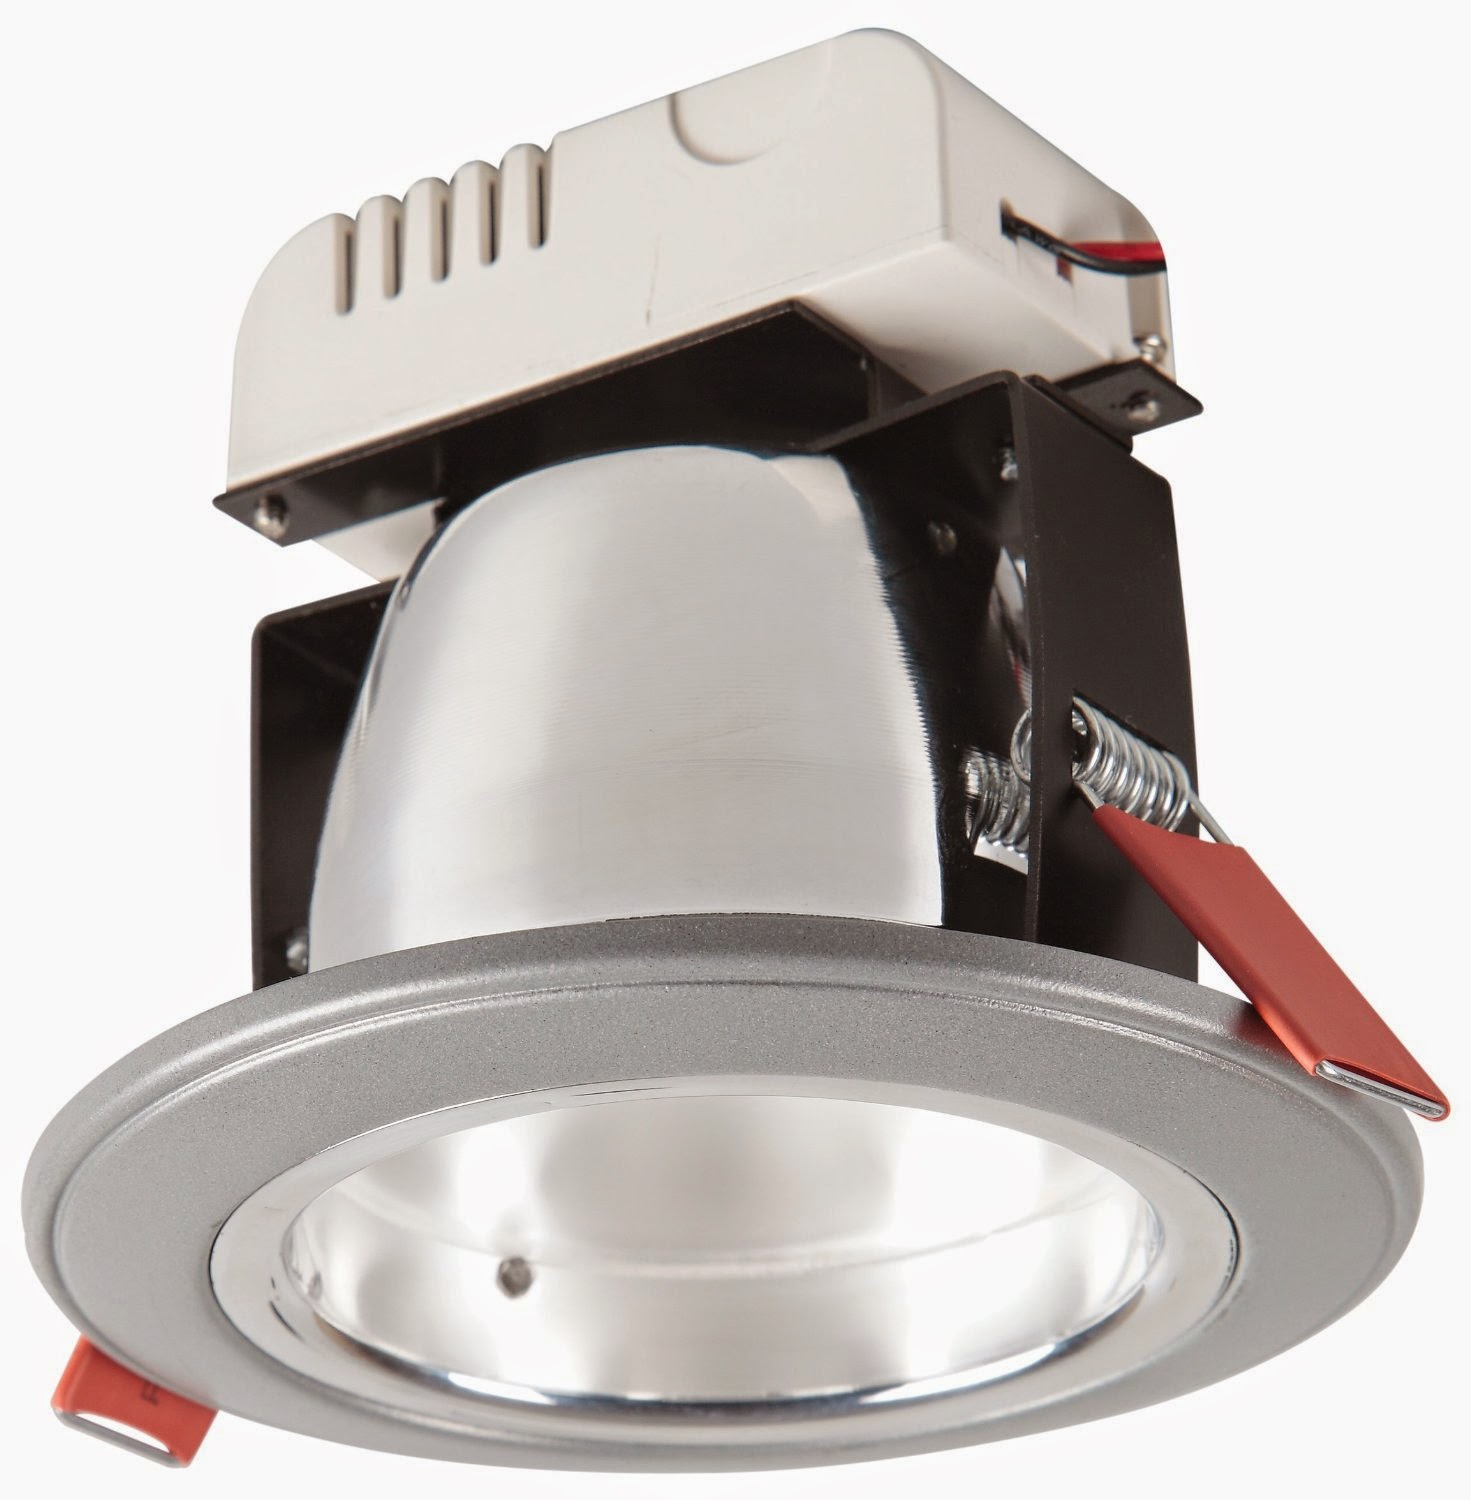 Amazon: Buy Havells Dl 50 8-Watt LED Lamp at Rs.1375